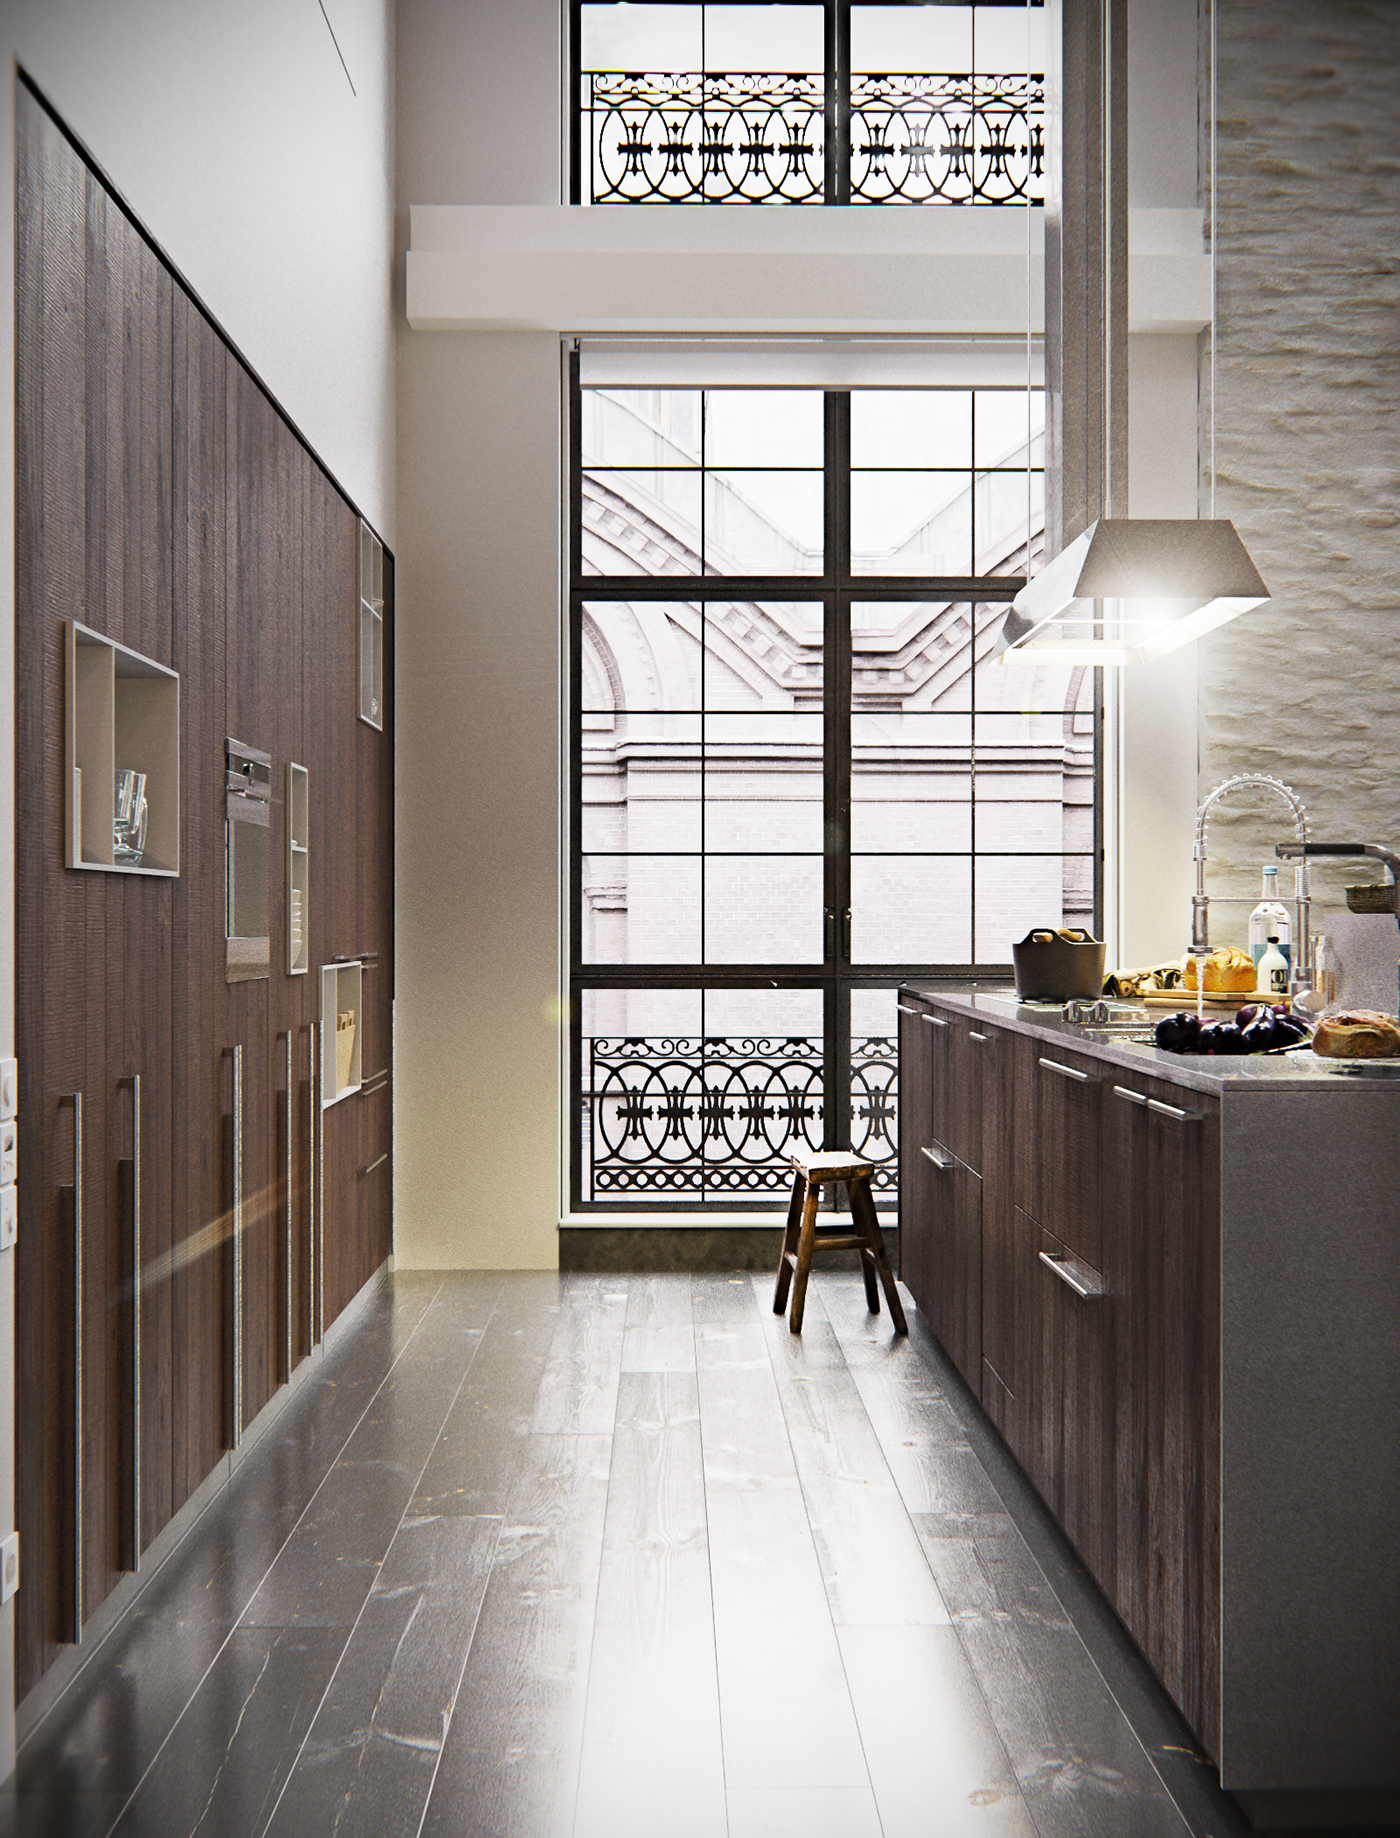 Loft studios project in new york city on behance for Lofts in new york city